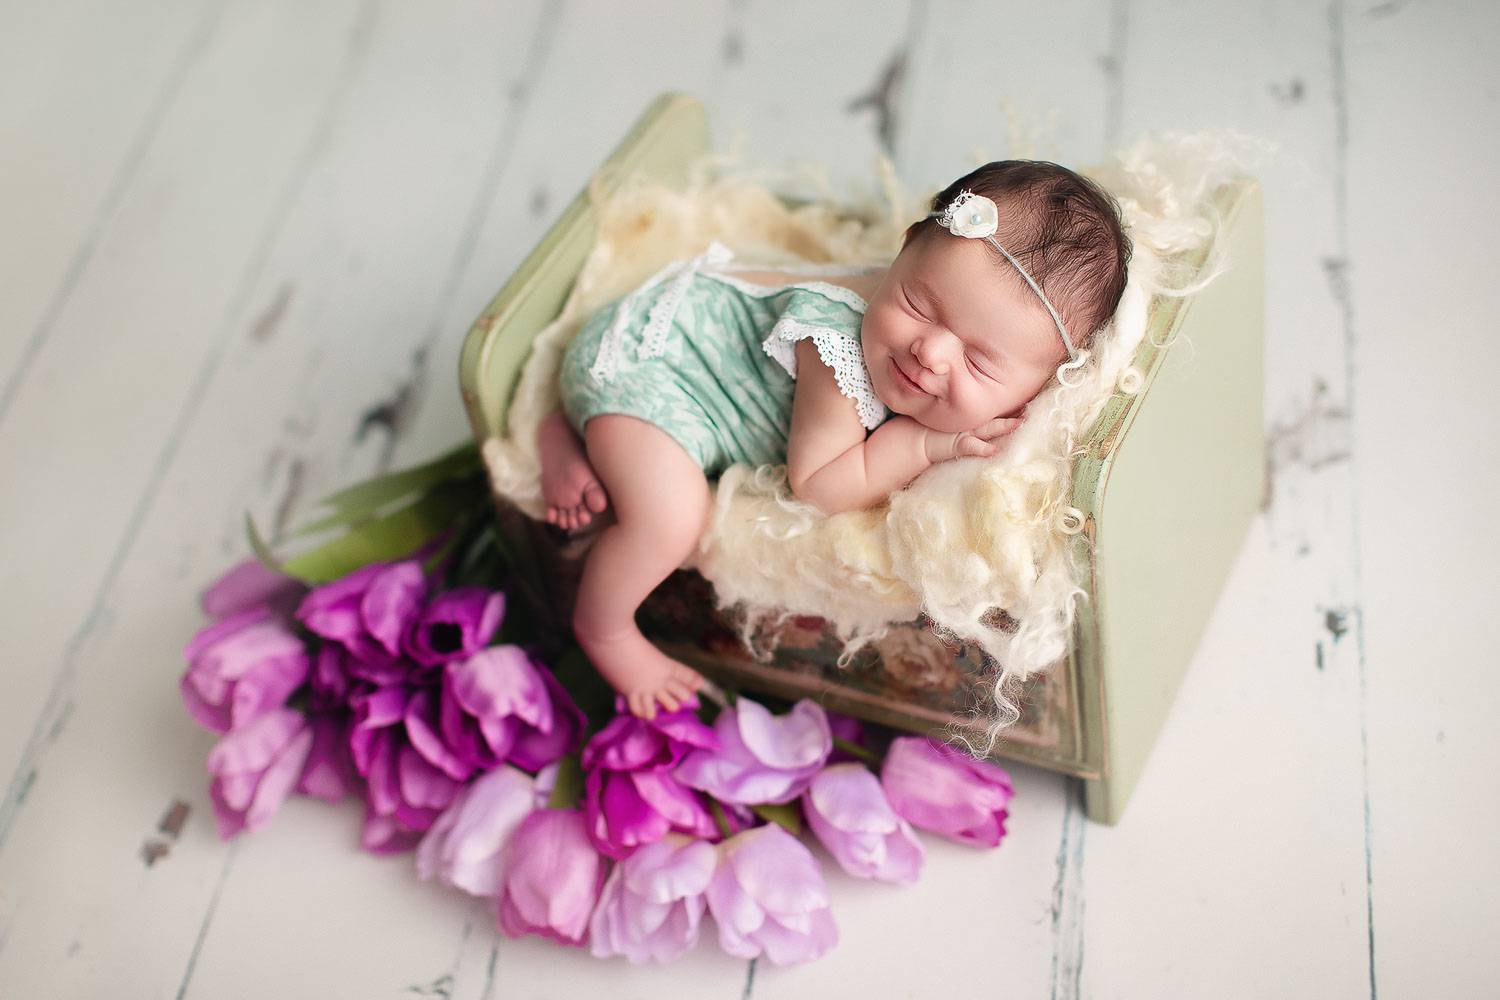 newborn photography | baby girl with a green outfit smiles | tulip